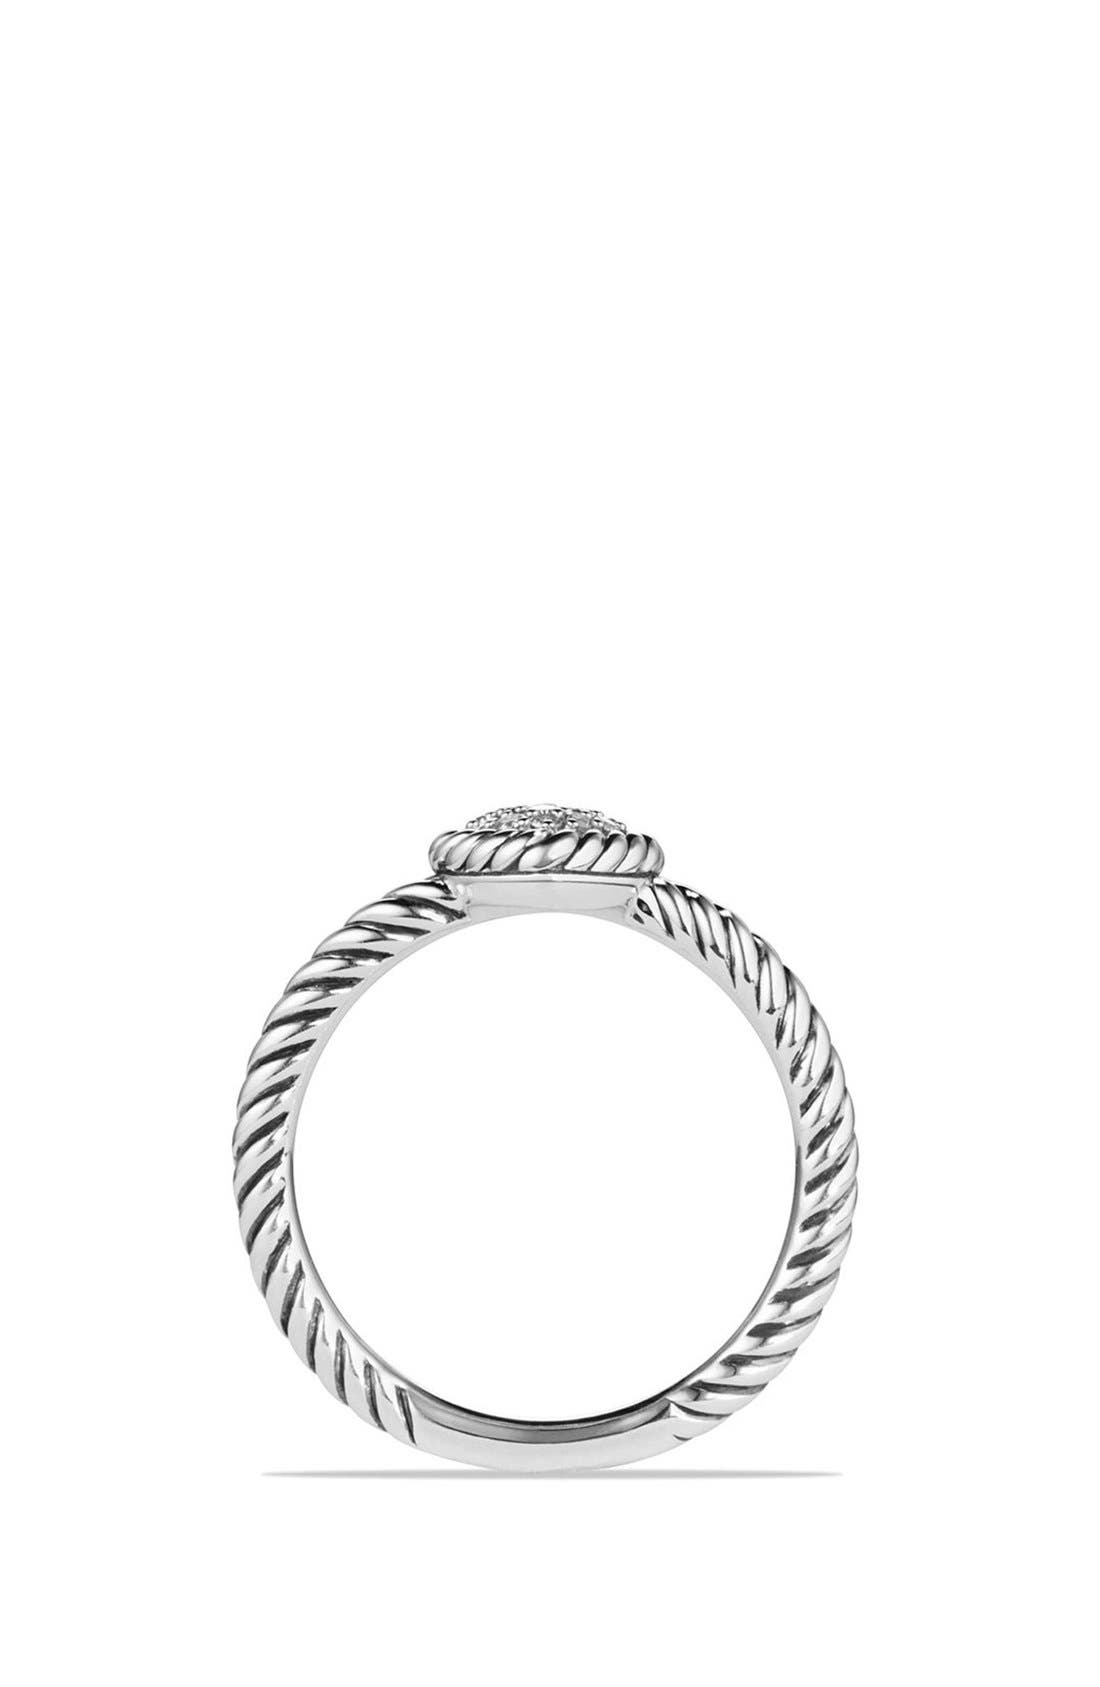 'Châtelaine' Heart Ring with Diamonds,                             Alternate thumbnail 5, color,                             SILVER